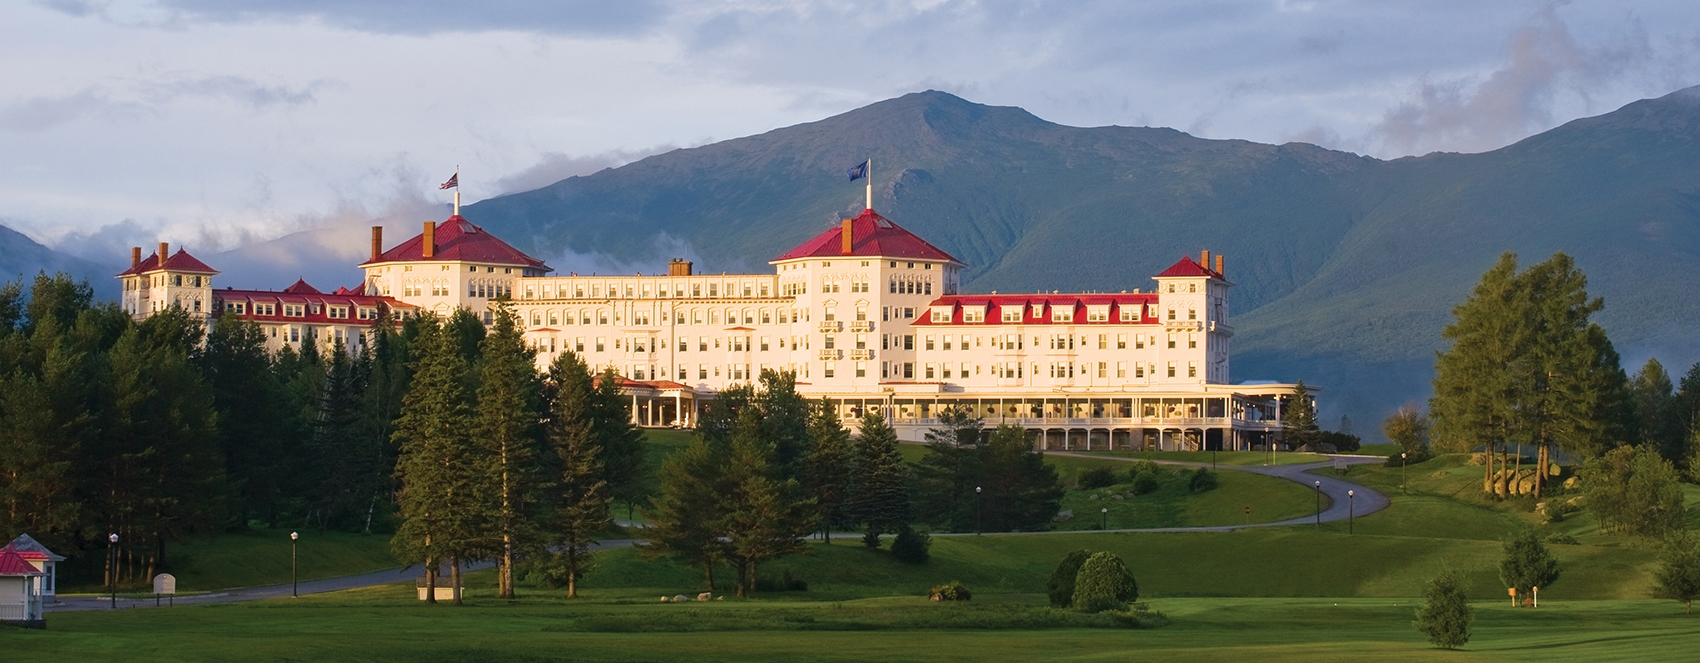 Mount Washington Hotels | Omni Mount Washington Resort